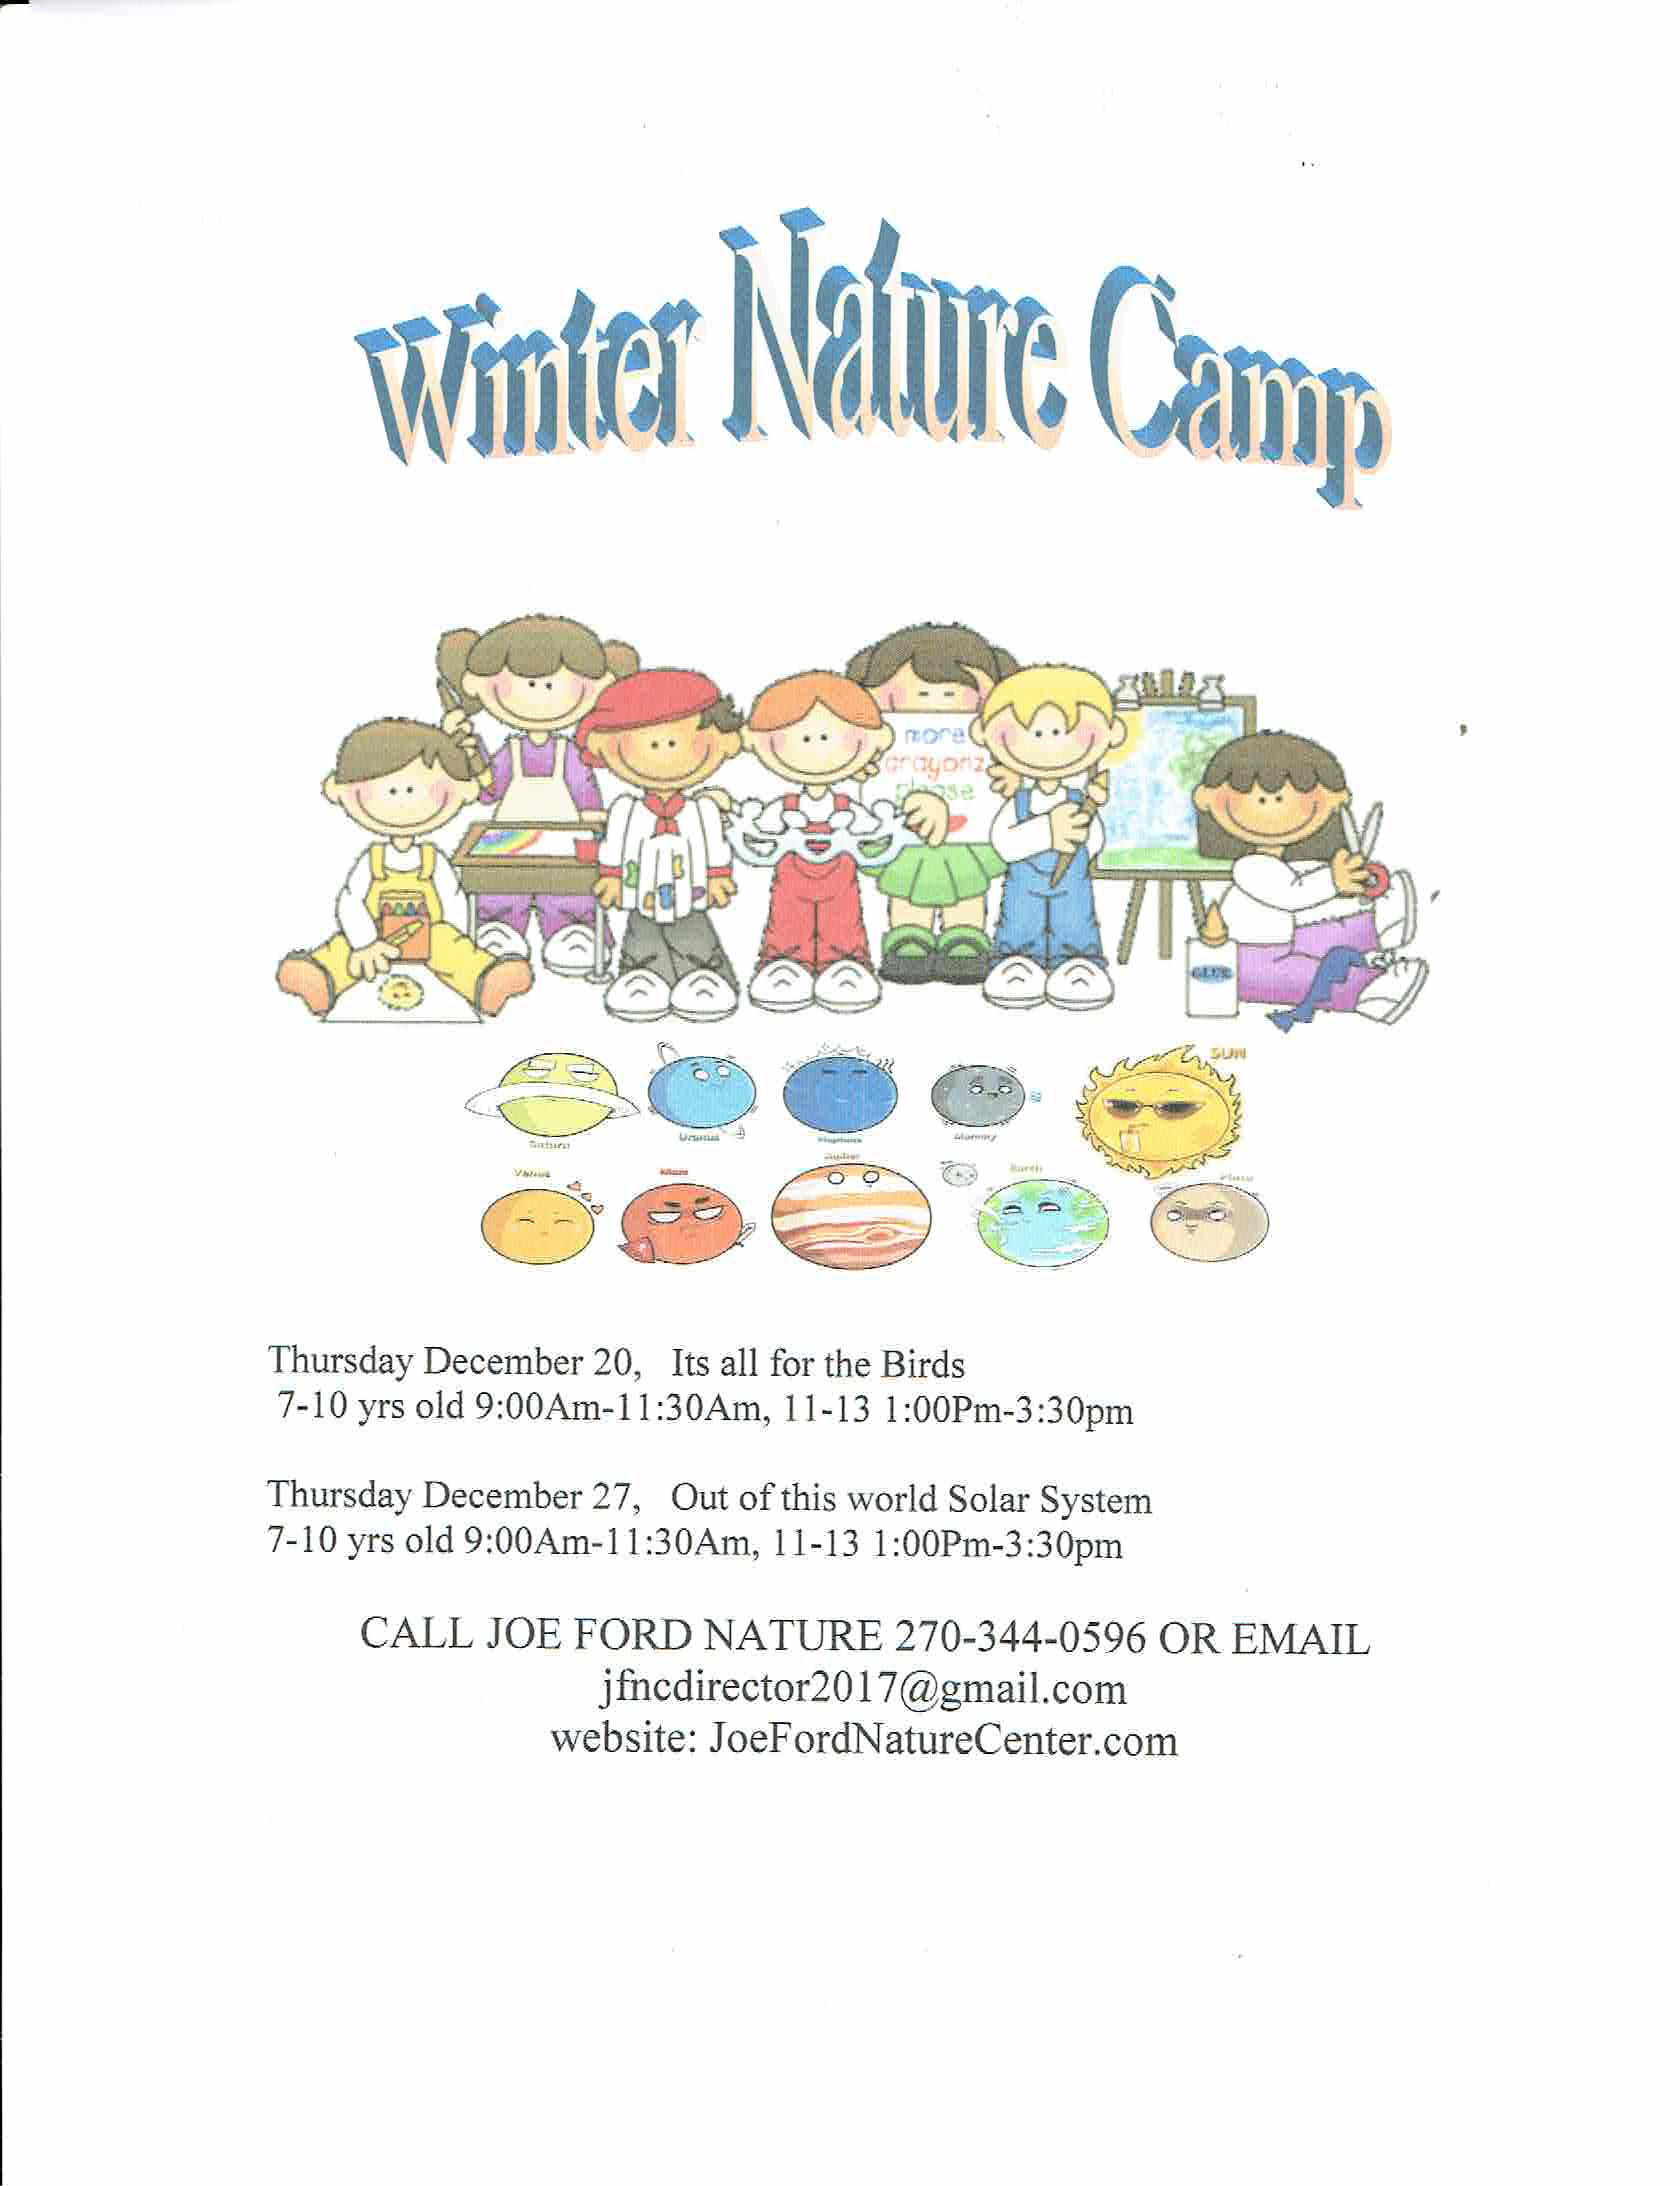 Joe Ford Nature Center Hosts Winter Nature Camps Next Month